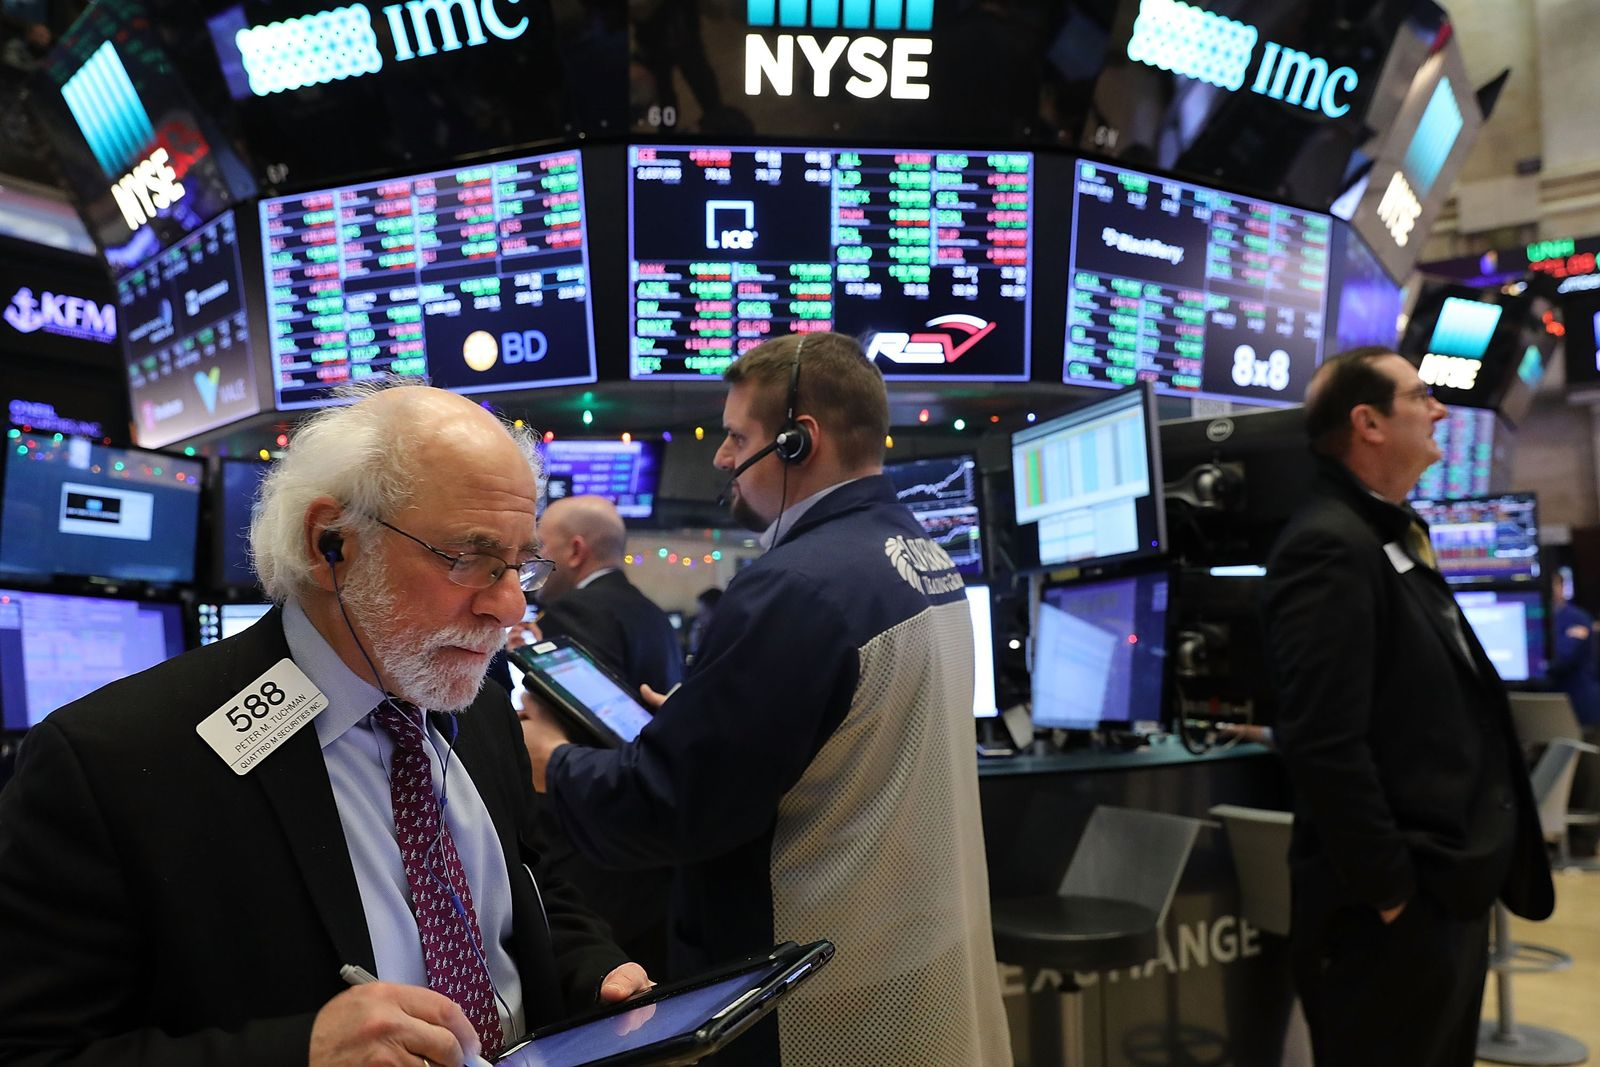 US-DOW-CLIMBS-IN-FIRST-NYSE-TRADING-DAY-OF-2018